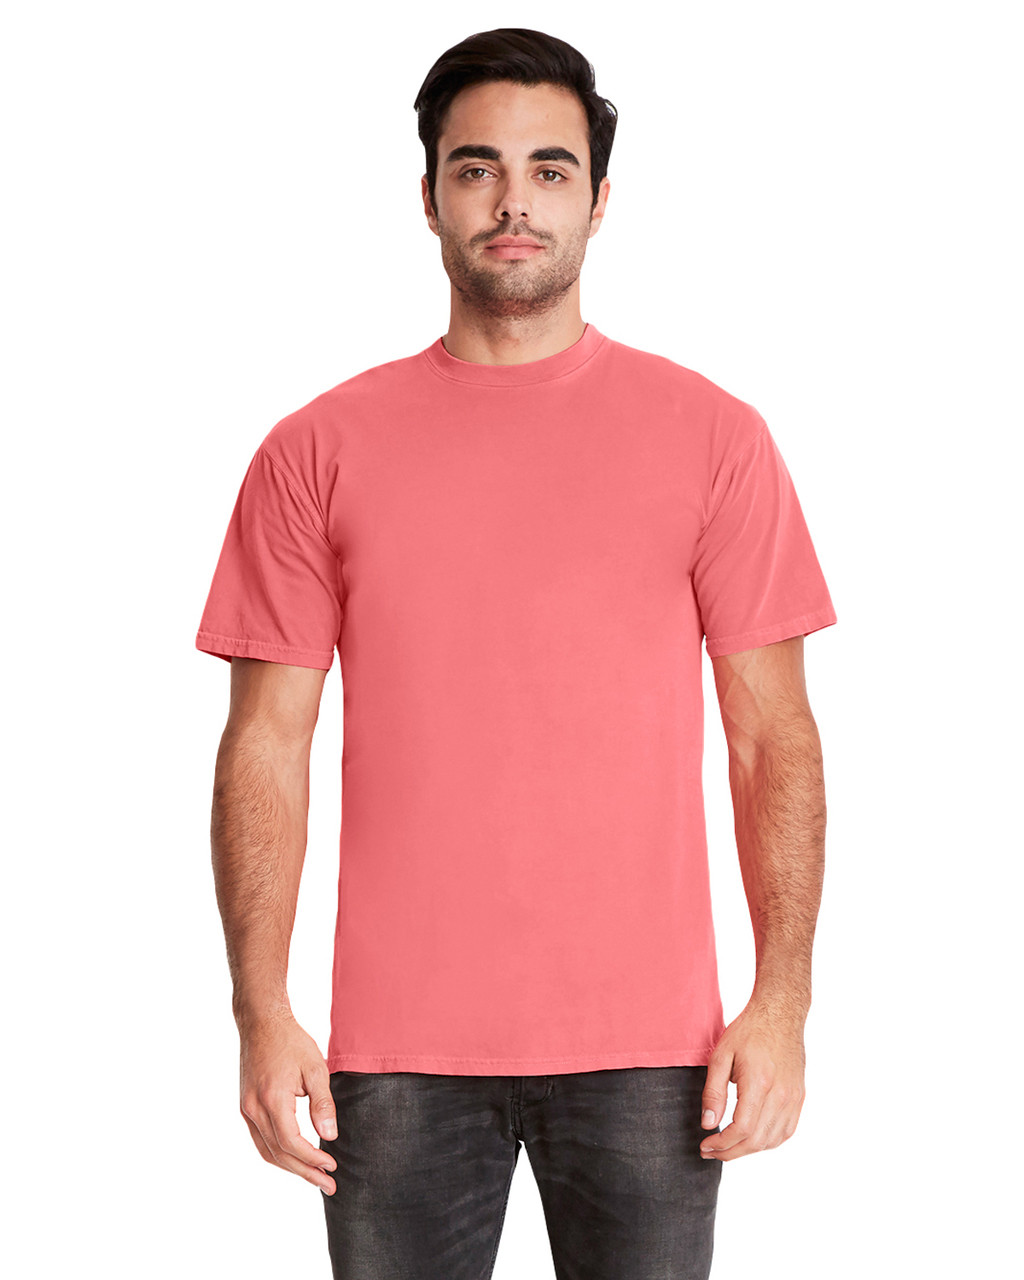 Guava - 7410 Next Level Adult Inspired Dye Crew T-Shirt | Blankclothing.ca